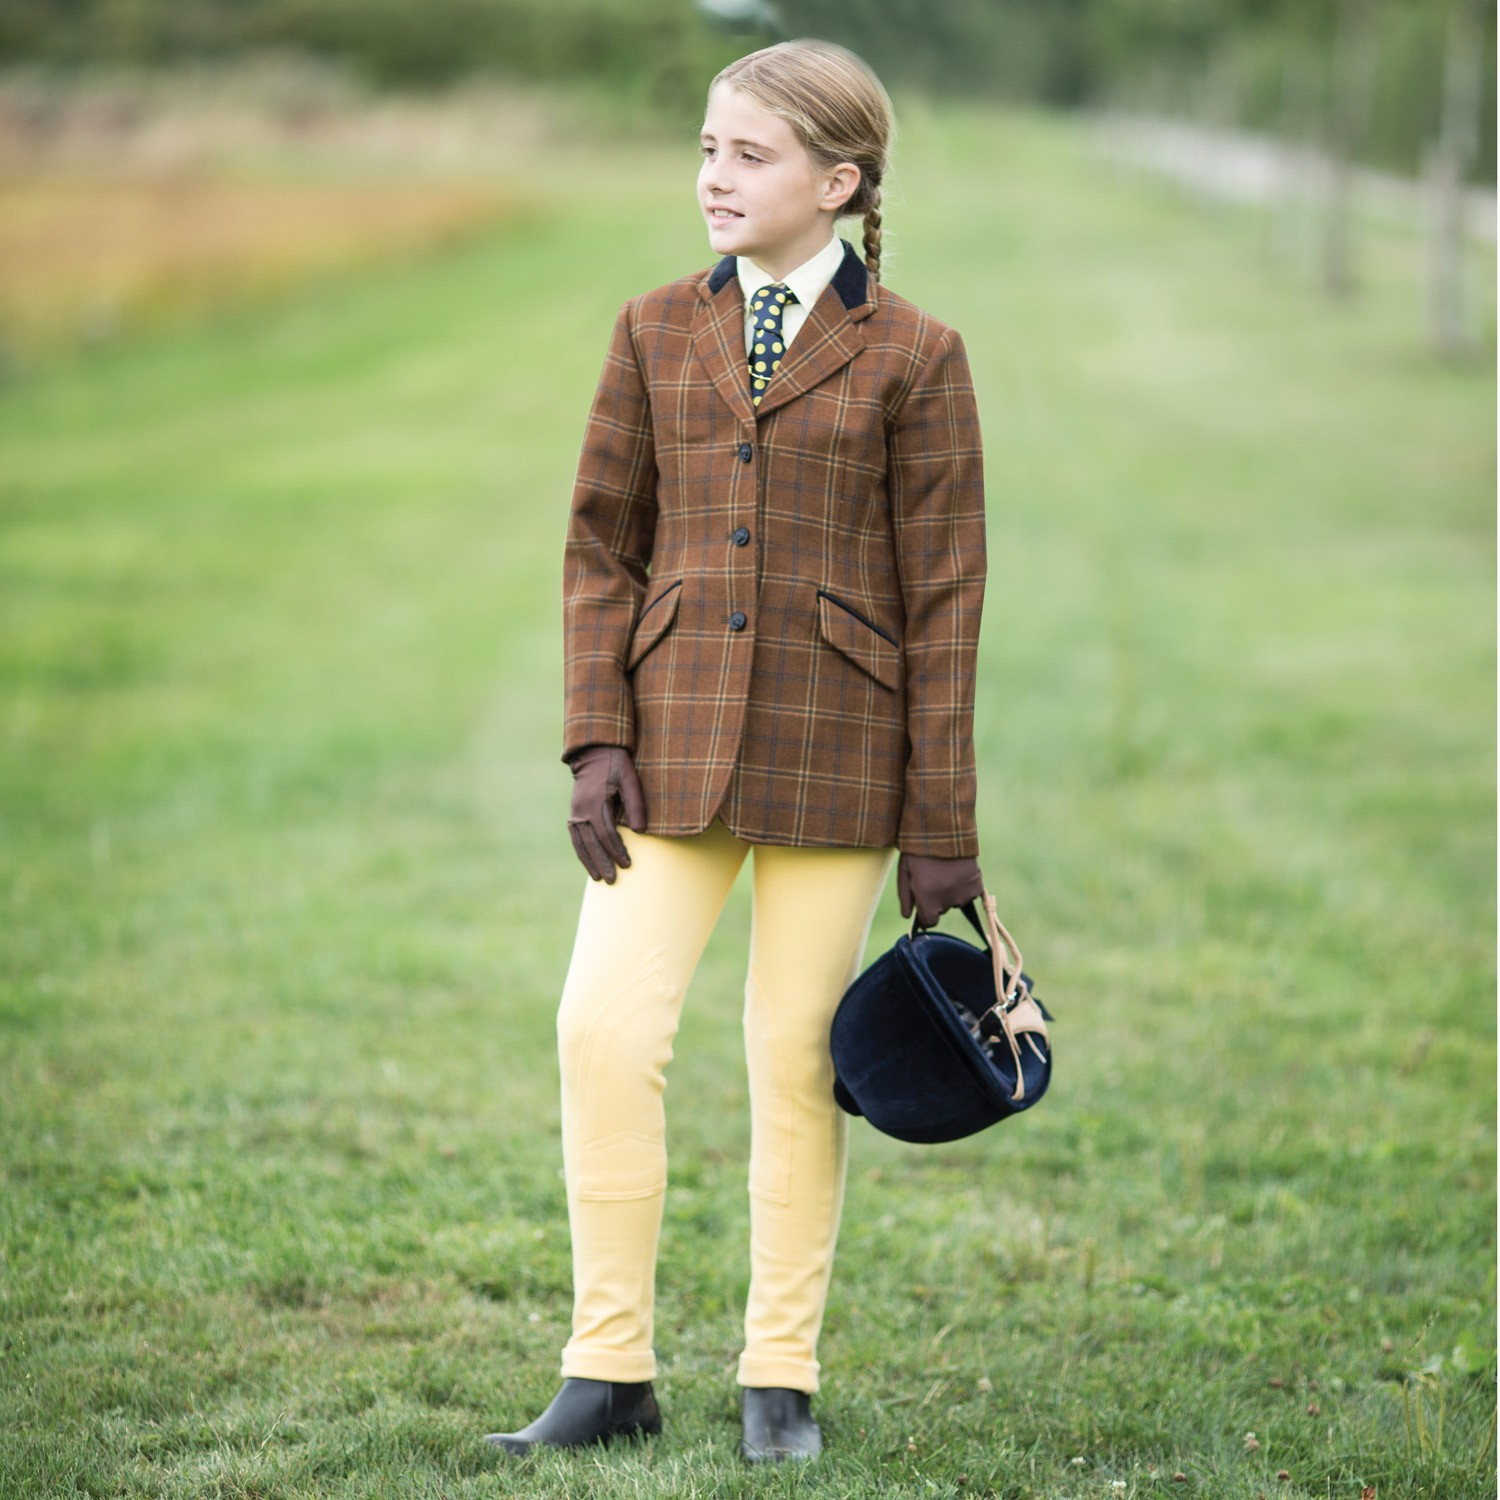 Equetech Junior Marlow Deluxe Tweed Jacket  - Thomas Irving's equestrian and accessories store  Equetech Junior Marlow Deluxe Tweed Jacket